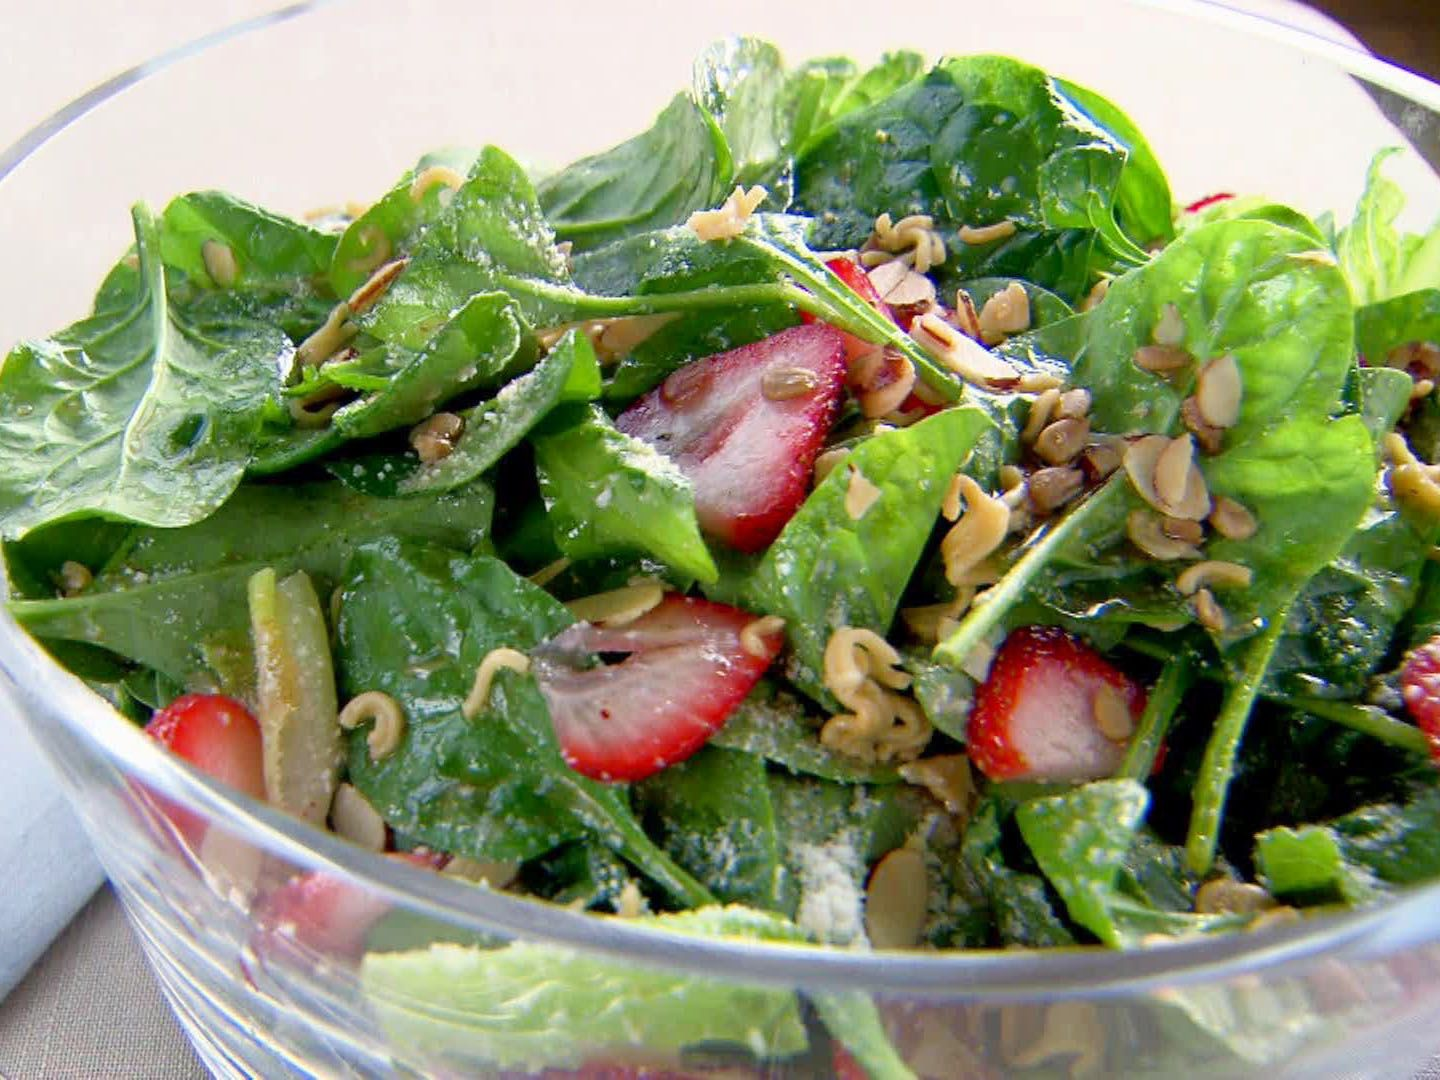 Strawberry salad recipe budget meal planning easter dinner and strawberry salad recipe budget meal planning easter dinner and parmesan forumfinder Images